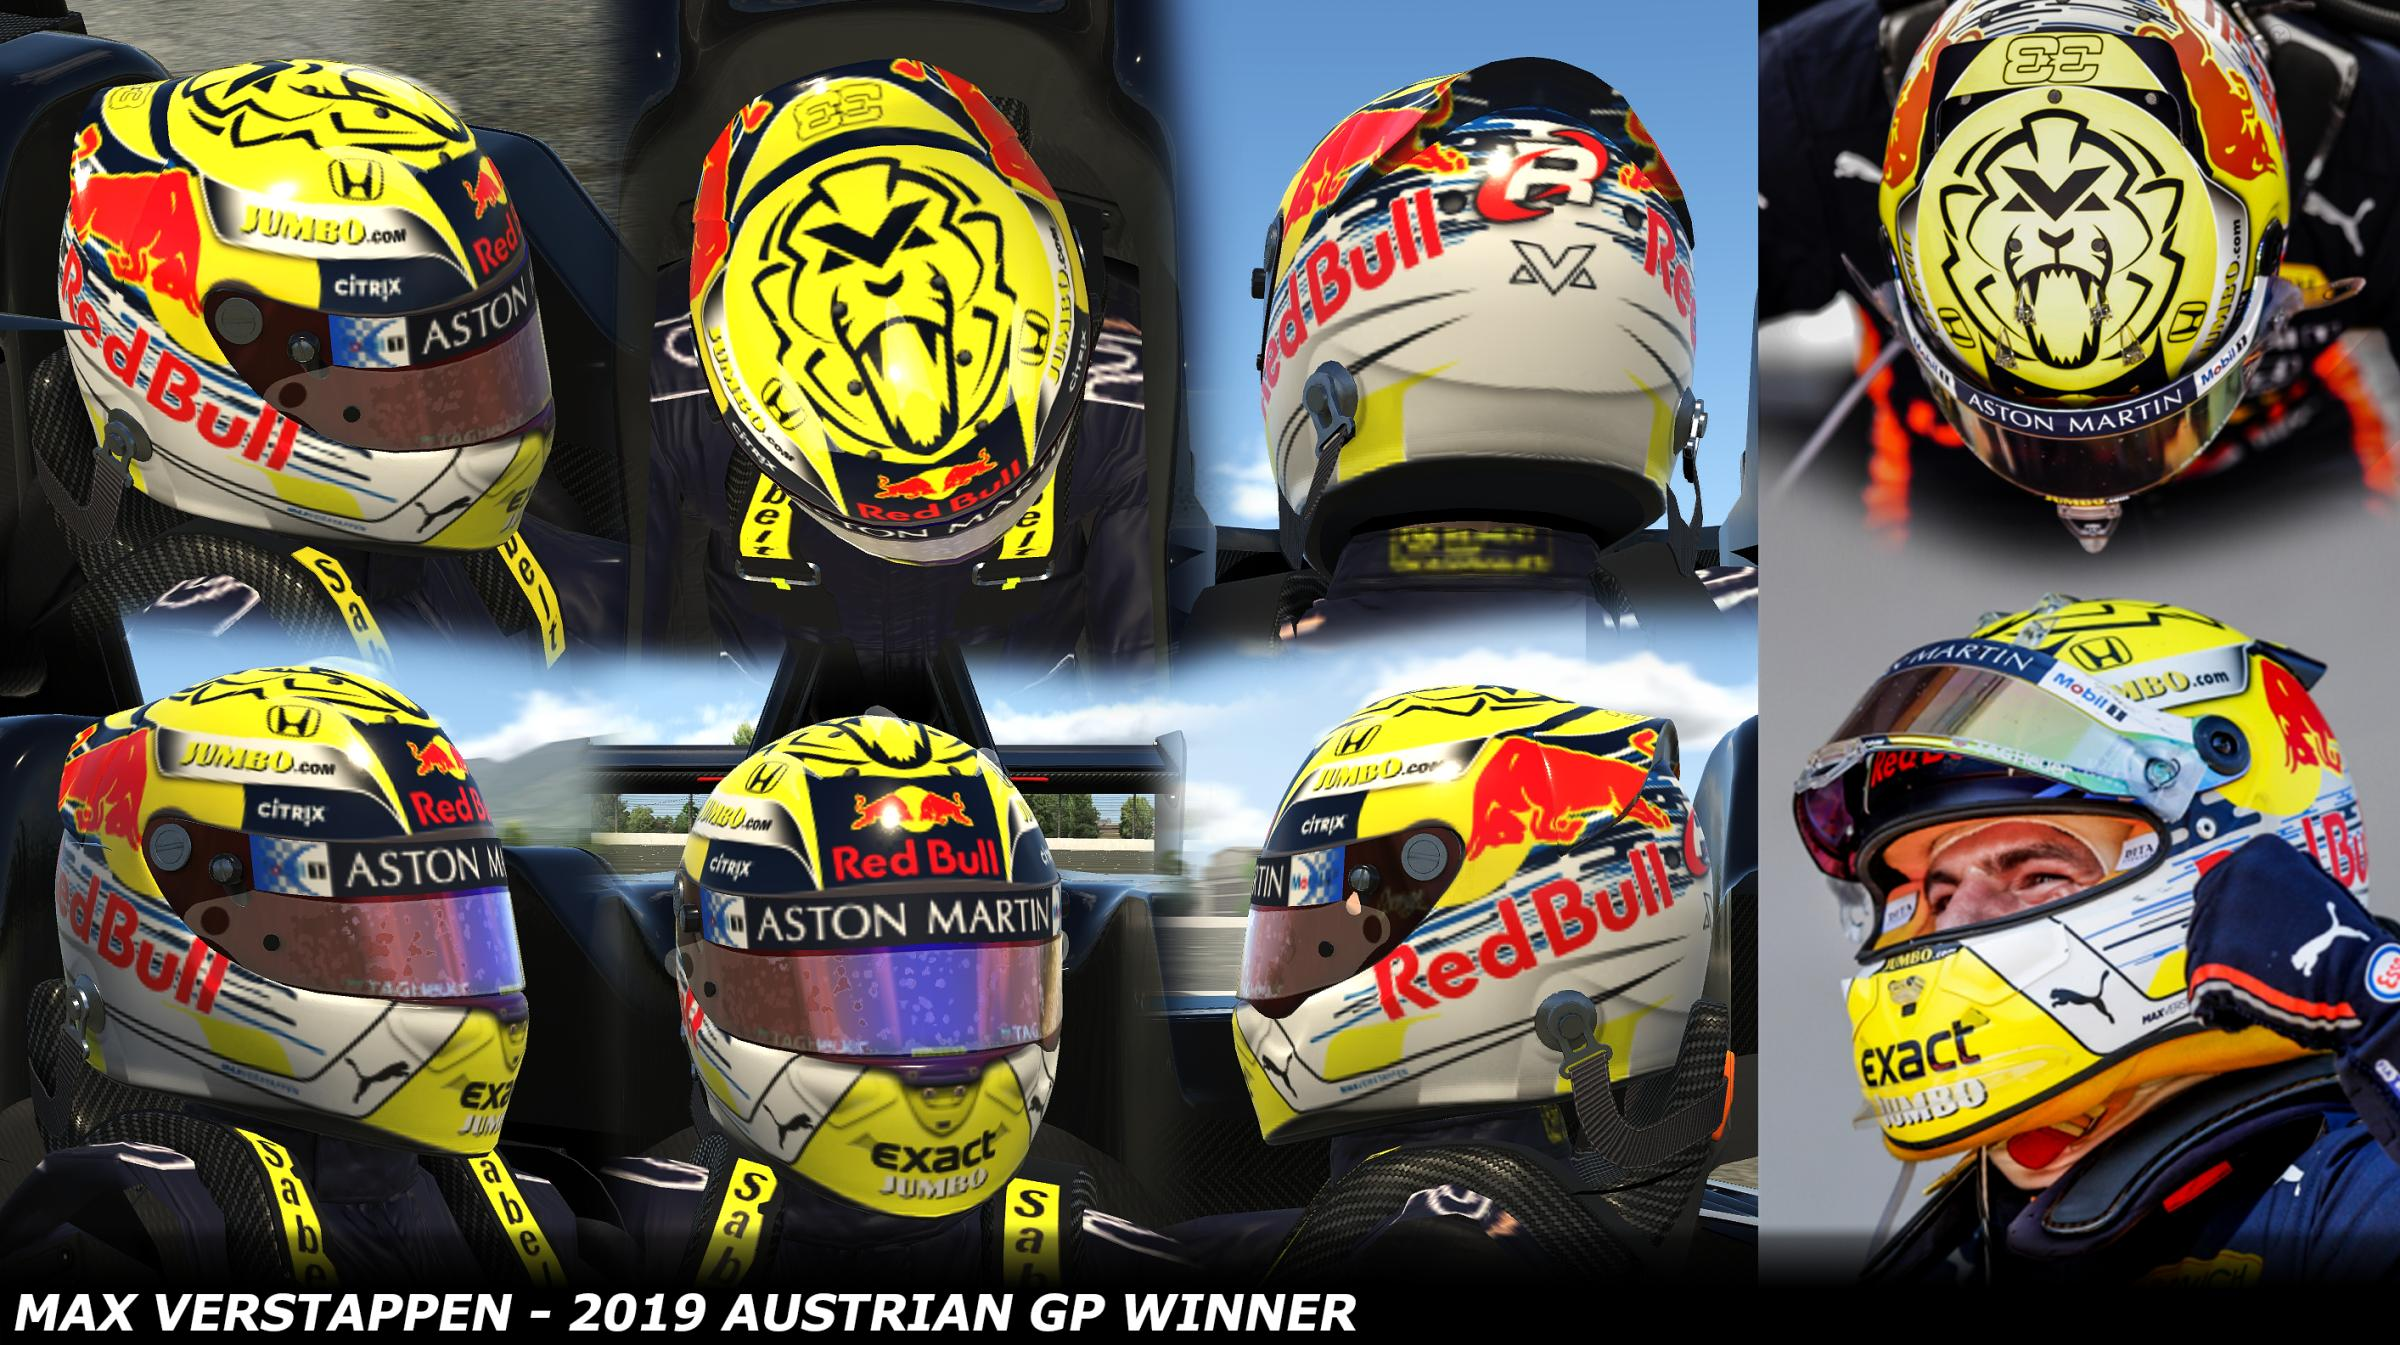 Preview of Max Verstappen 2019 - Austrian GP Winner by George Simmons